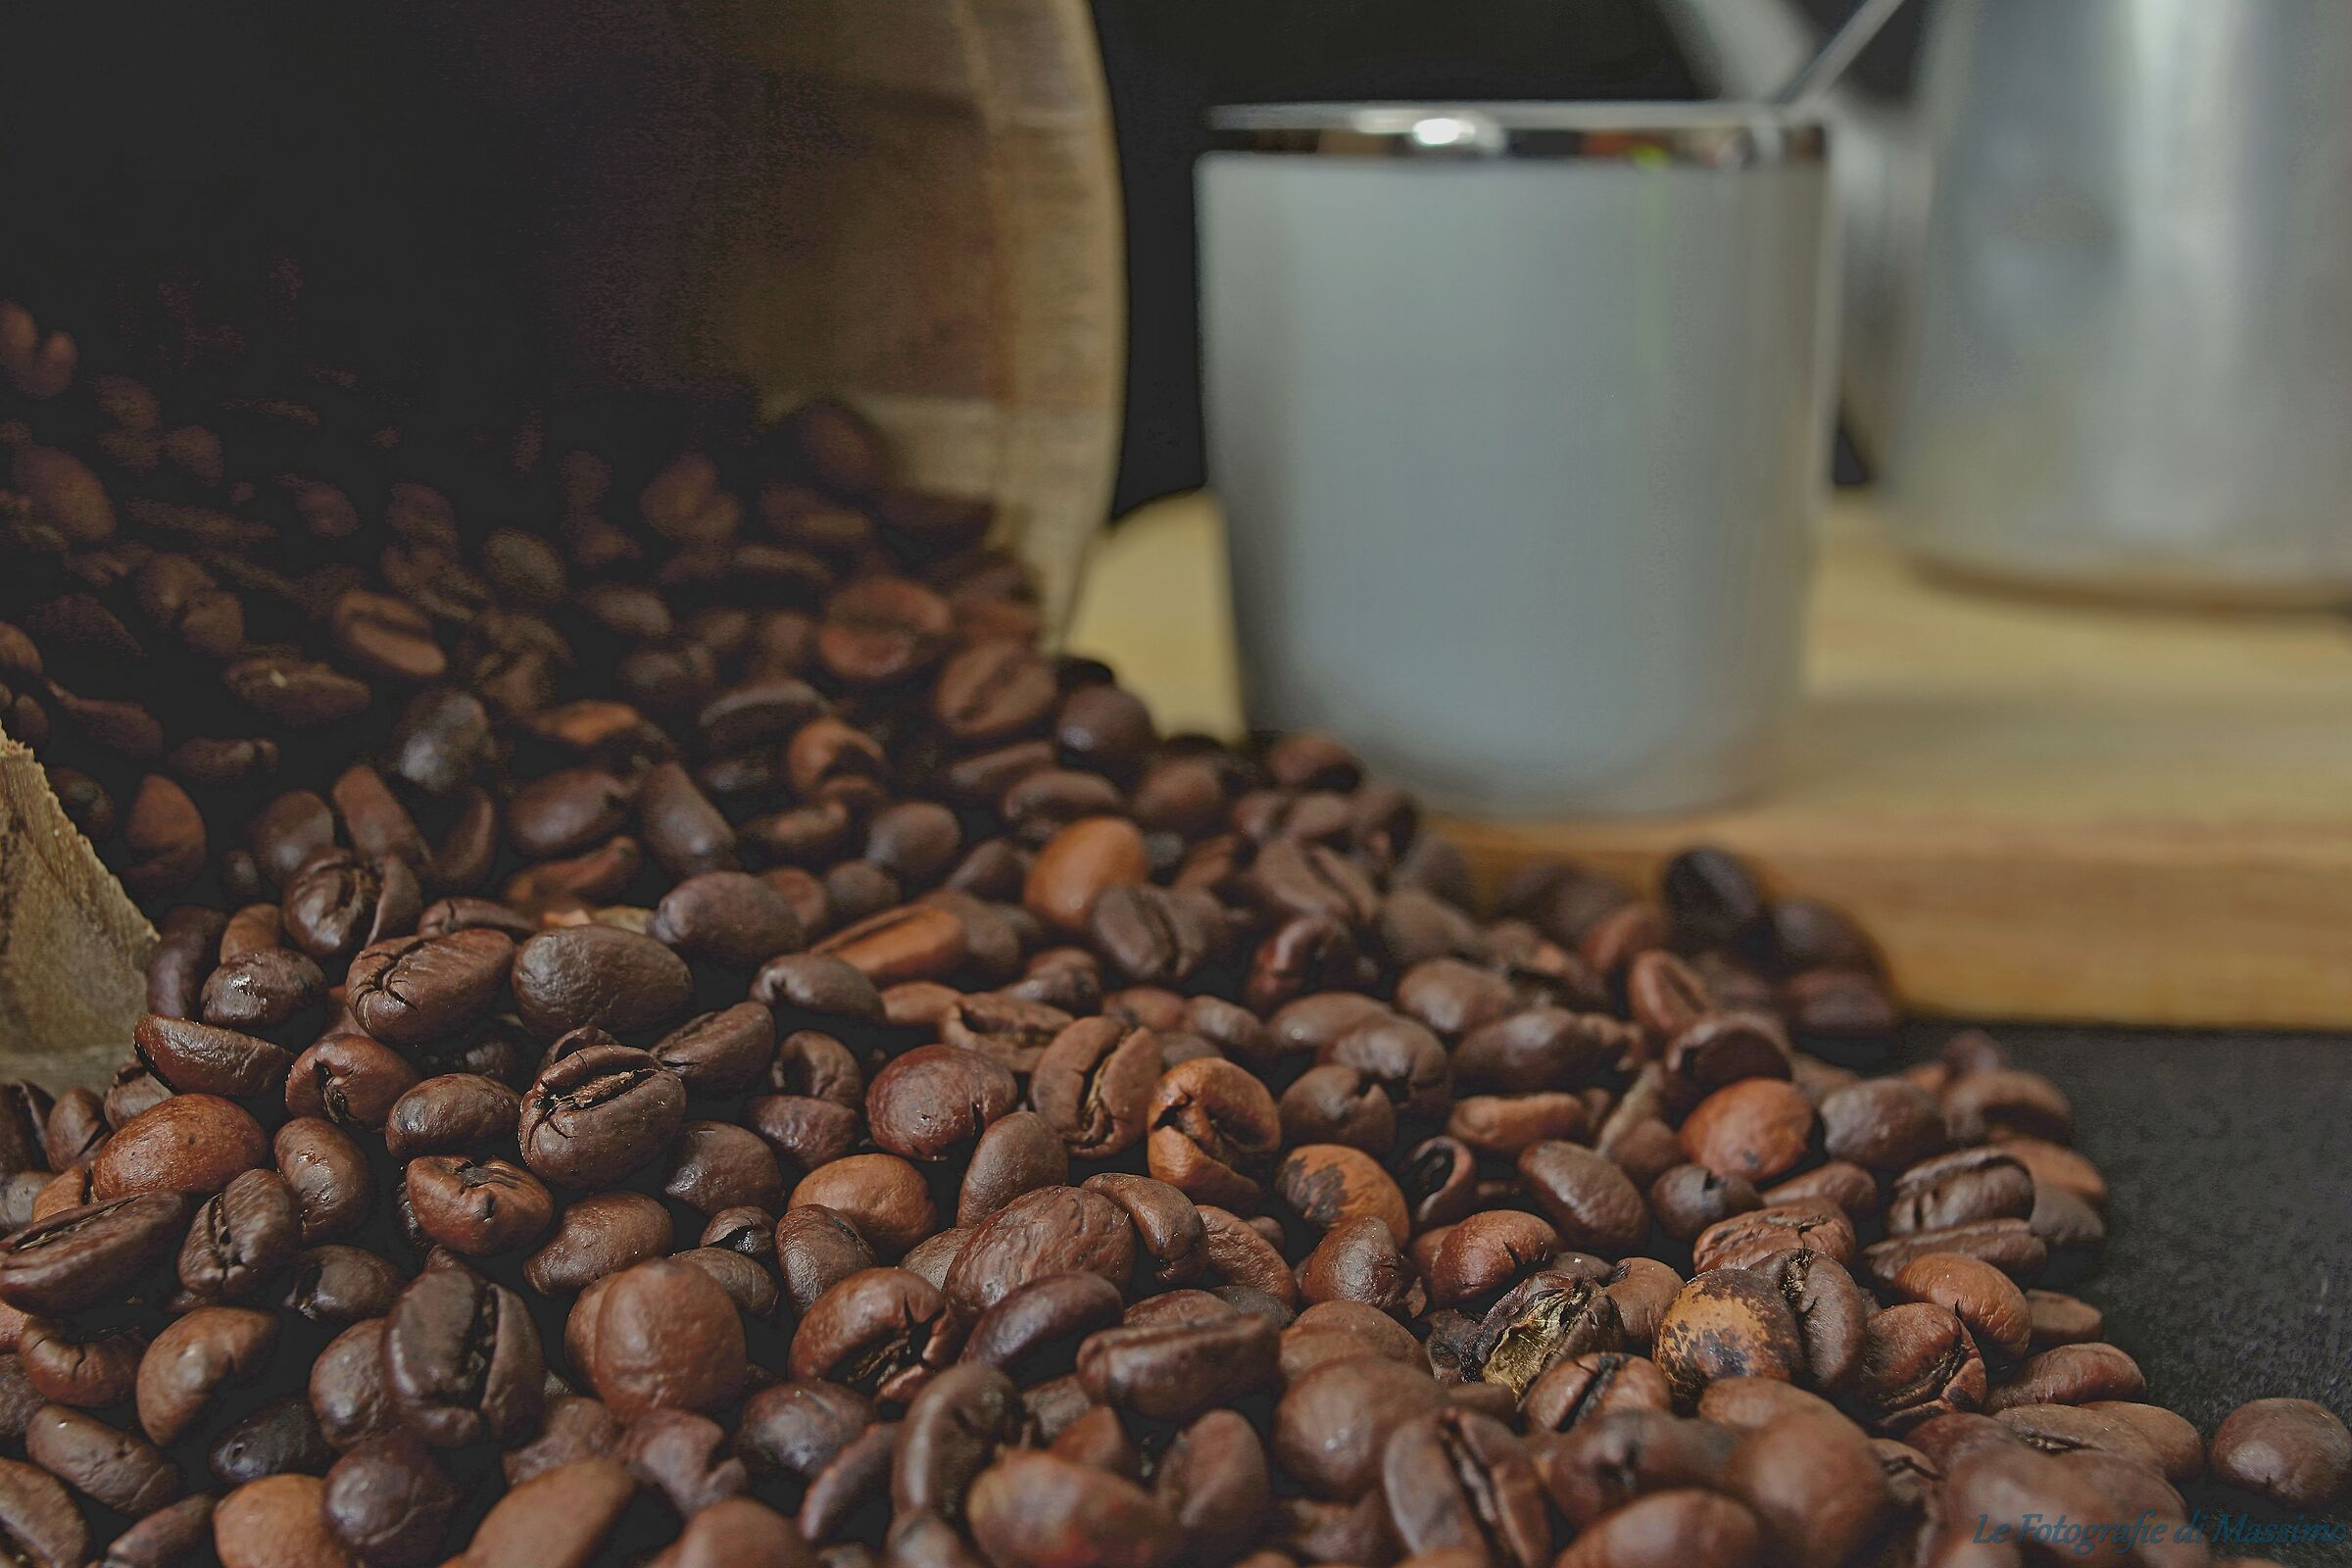 It's time for coffee...